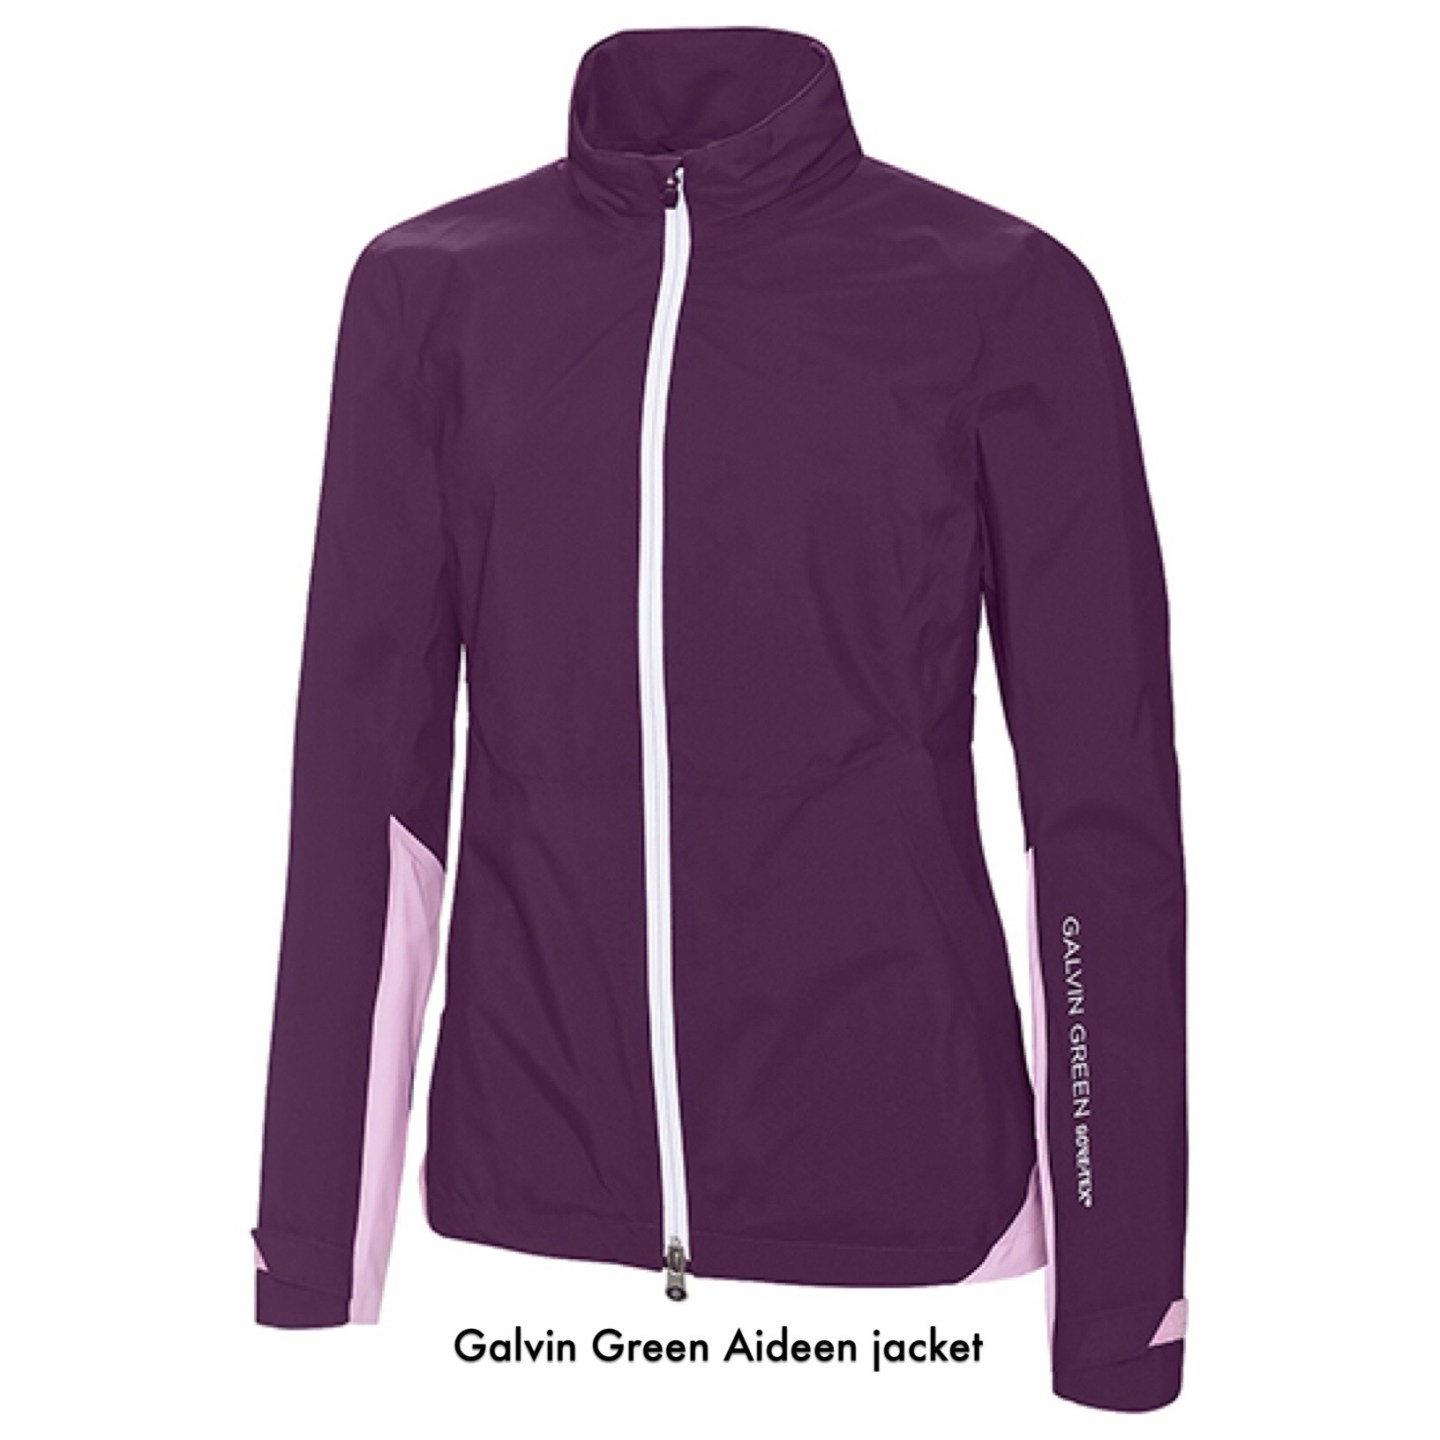 fall outerwear galvin green aideen